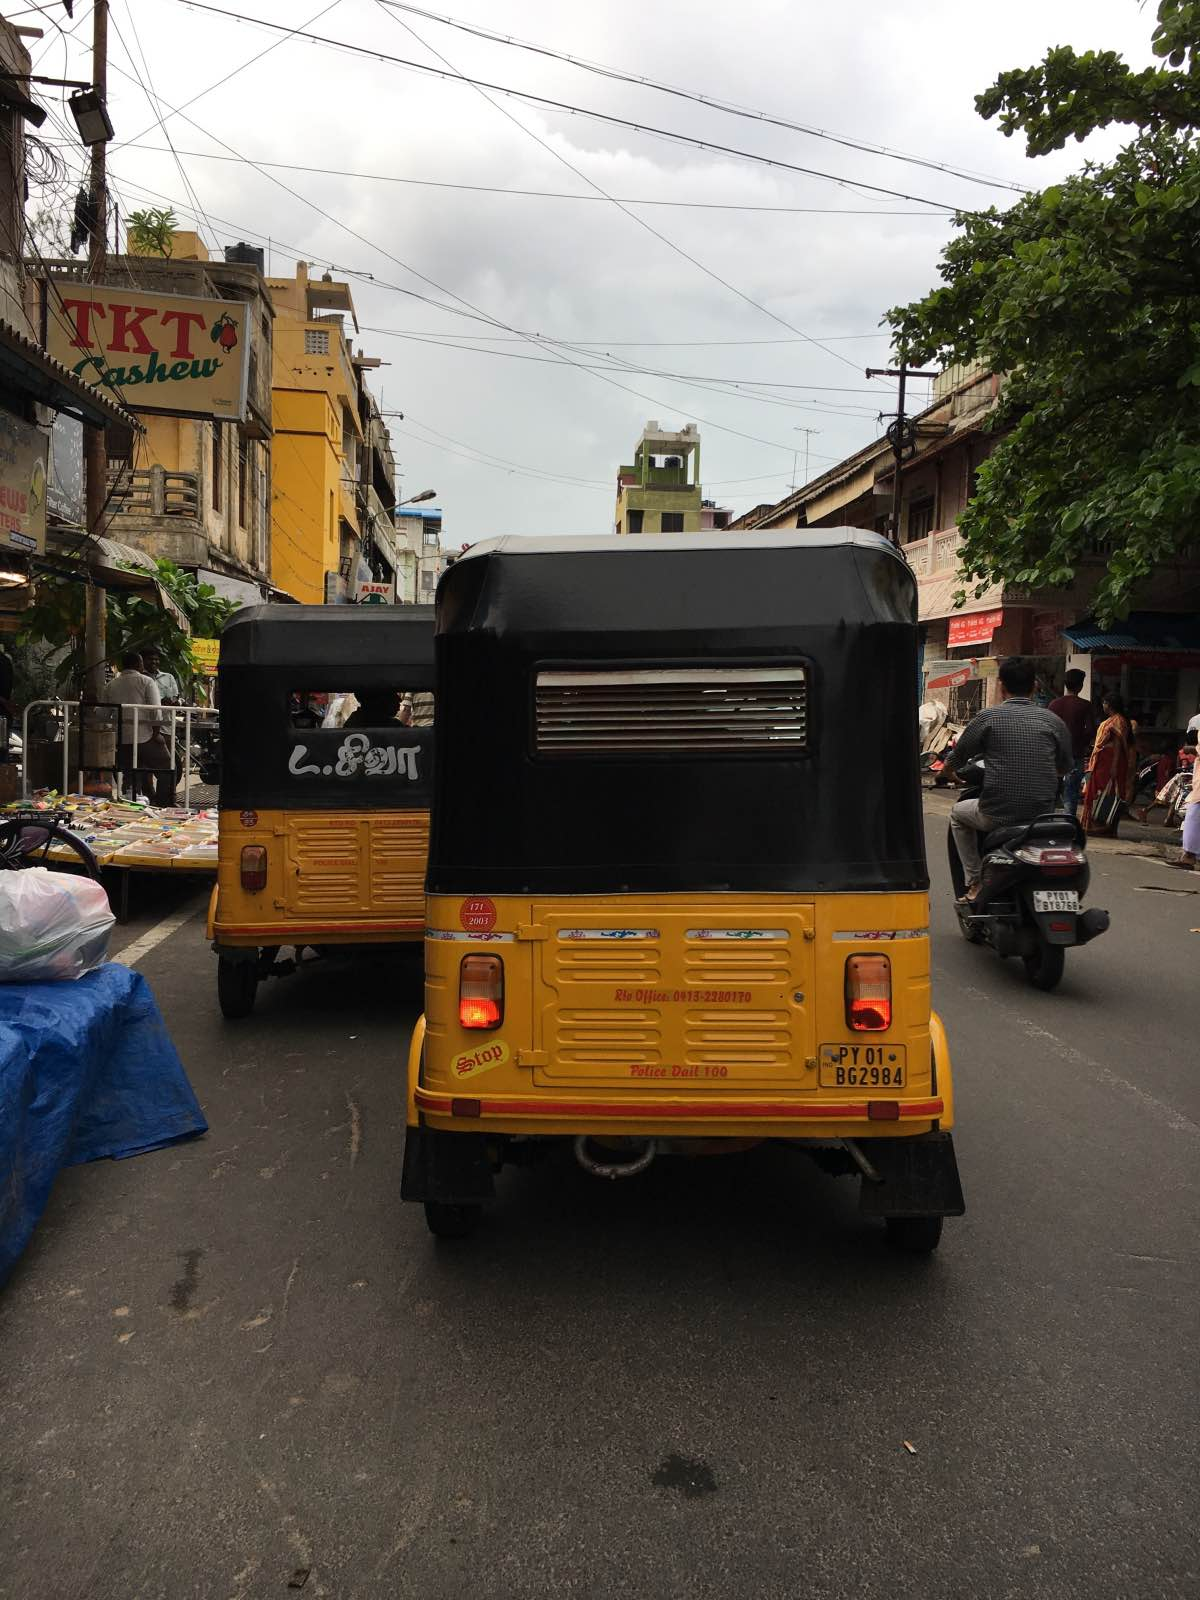 Tuk tuks at Goubert Market Pondicherry